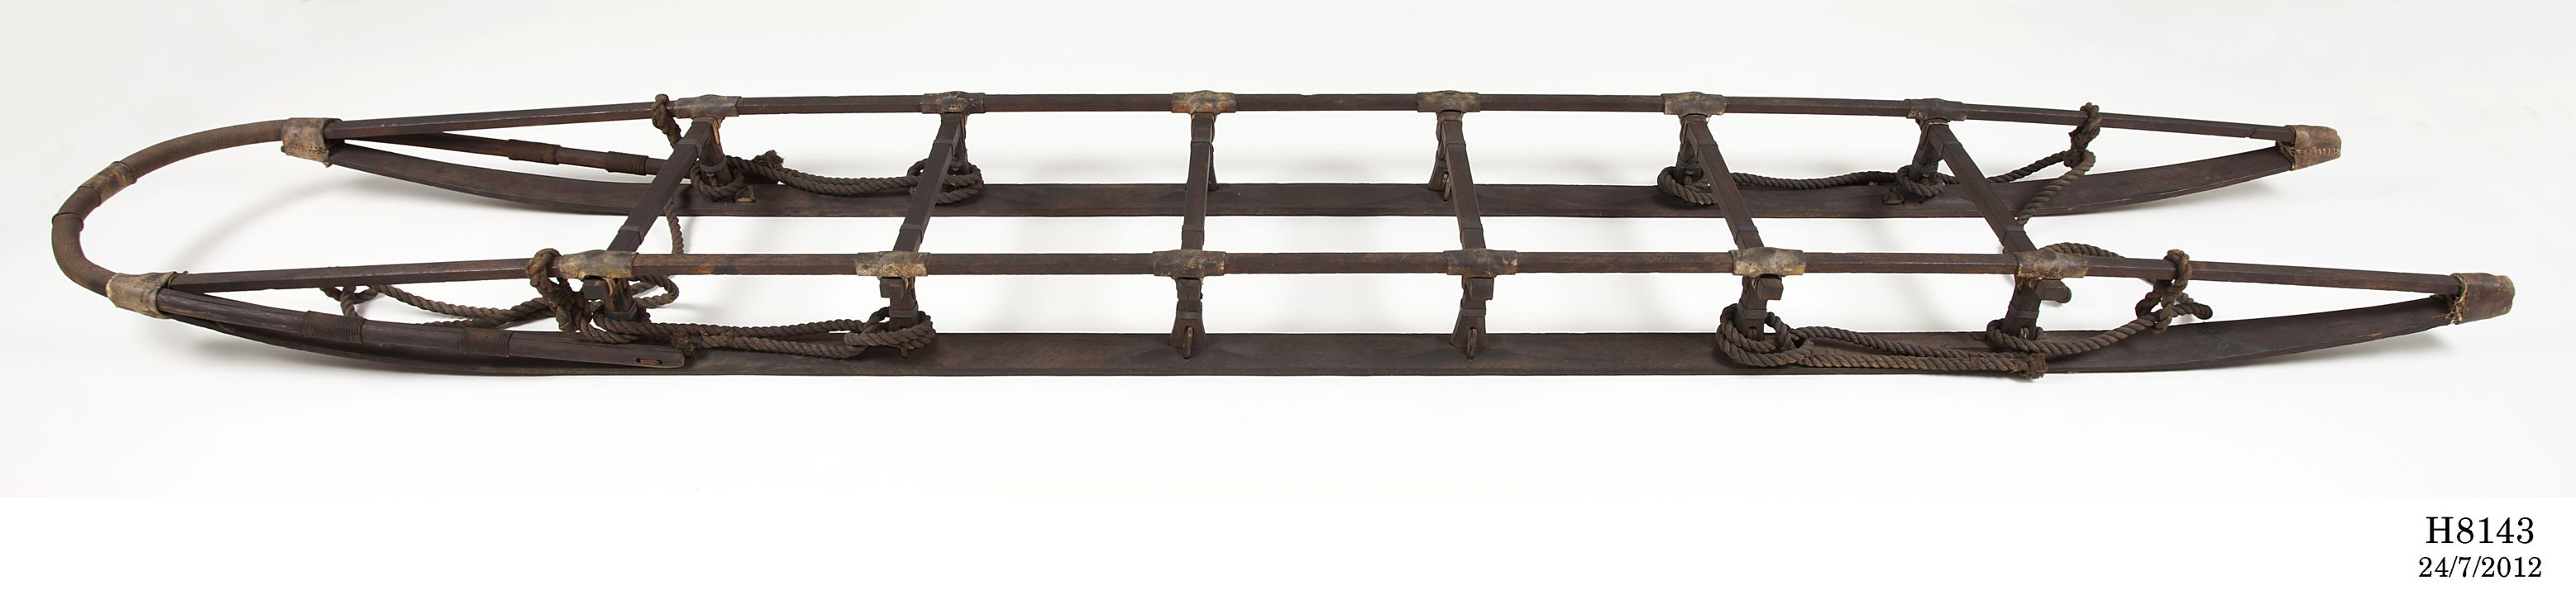 H8143 Sledge, full size, Corymbia maculata (spotted gum) / metal / natural fibre / leather, made by Alexander Worsfold, King Street, St Peters, New South Wales, Australia, 1911, used on the Australasian Antarctic Expedition led by Sir Douglas Mawson, Antarctica, 1911-1914. Click to enlarge.